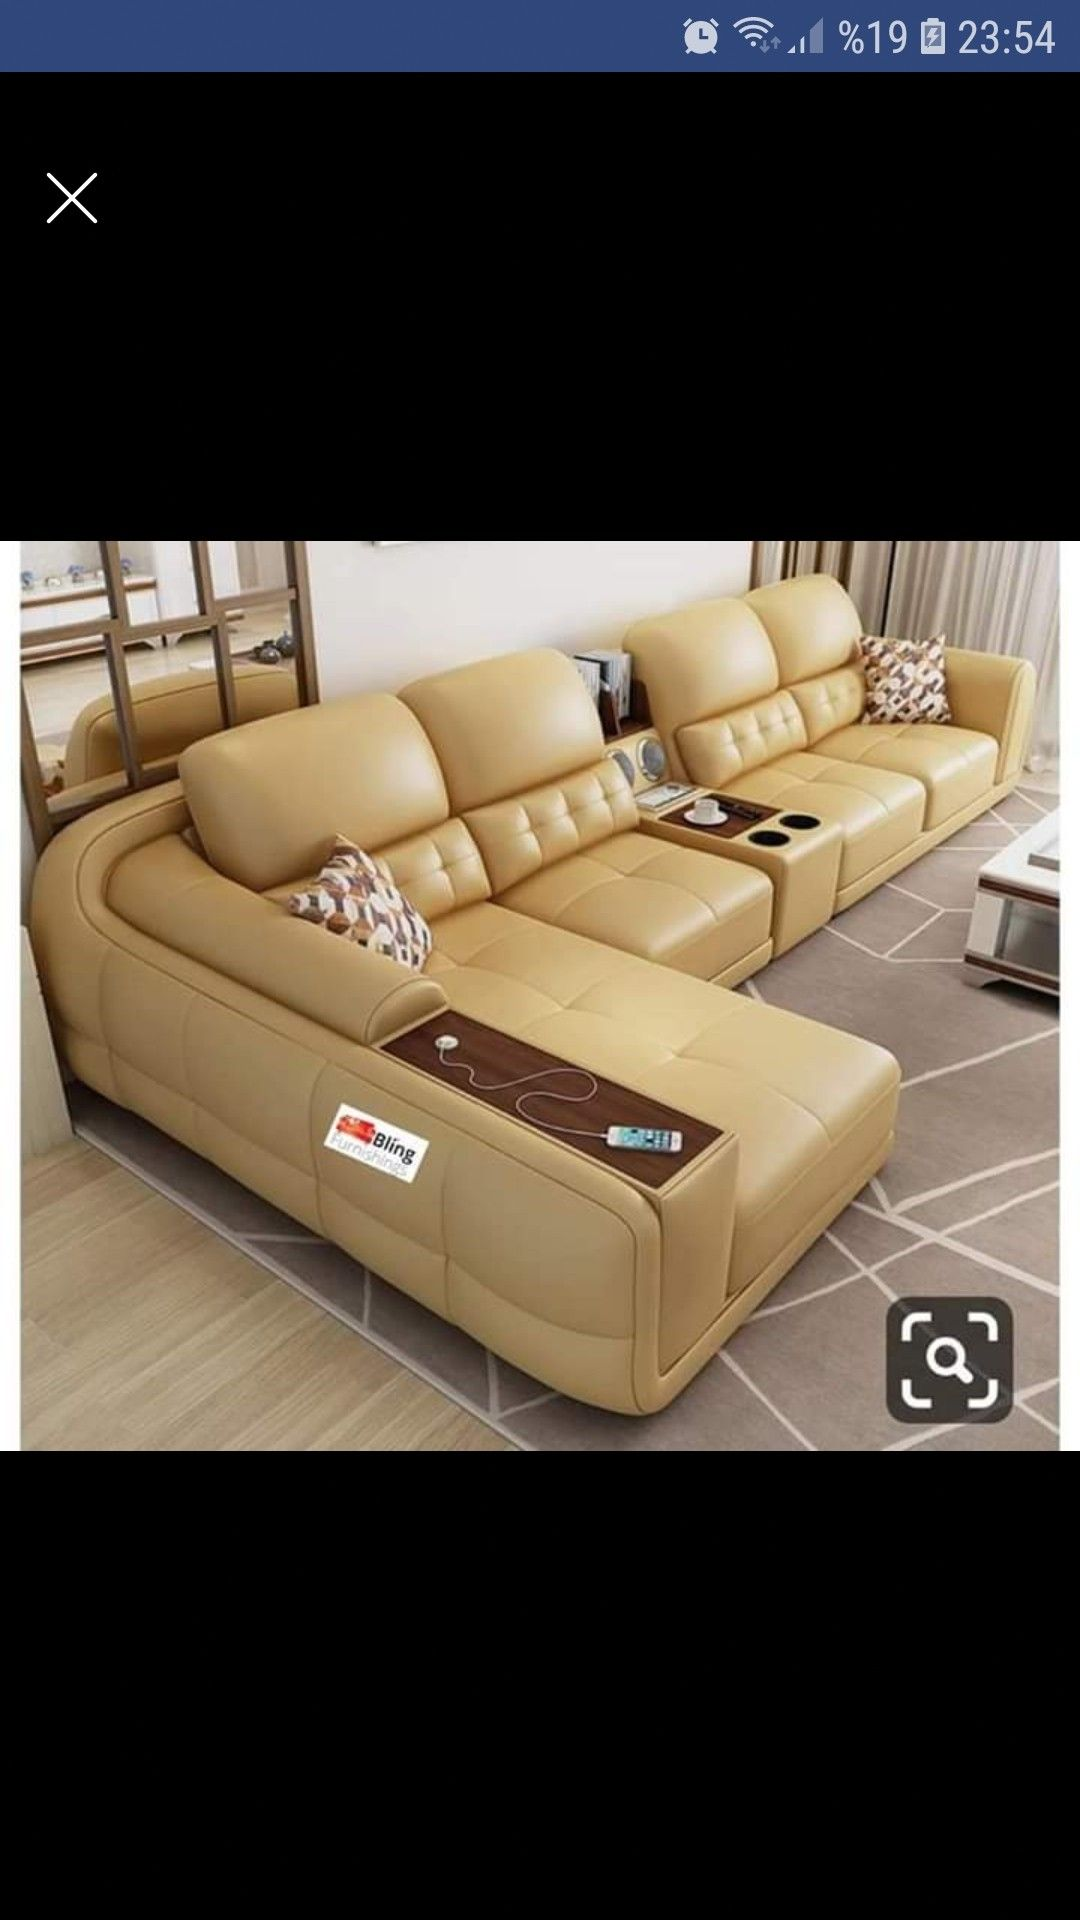 Pin By Nitin Sethi On Ozellerim Leather Furniture Furniture Sofa